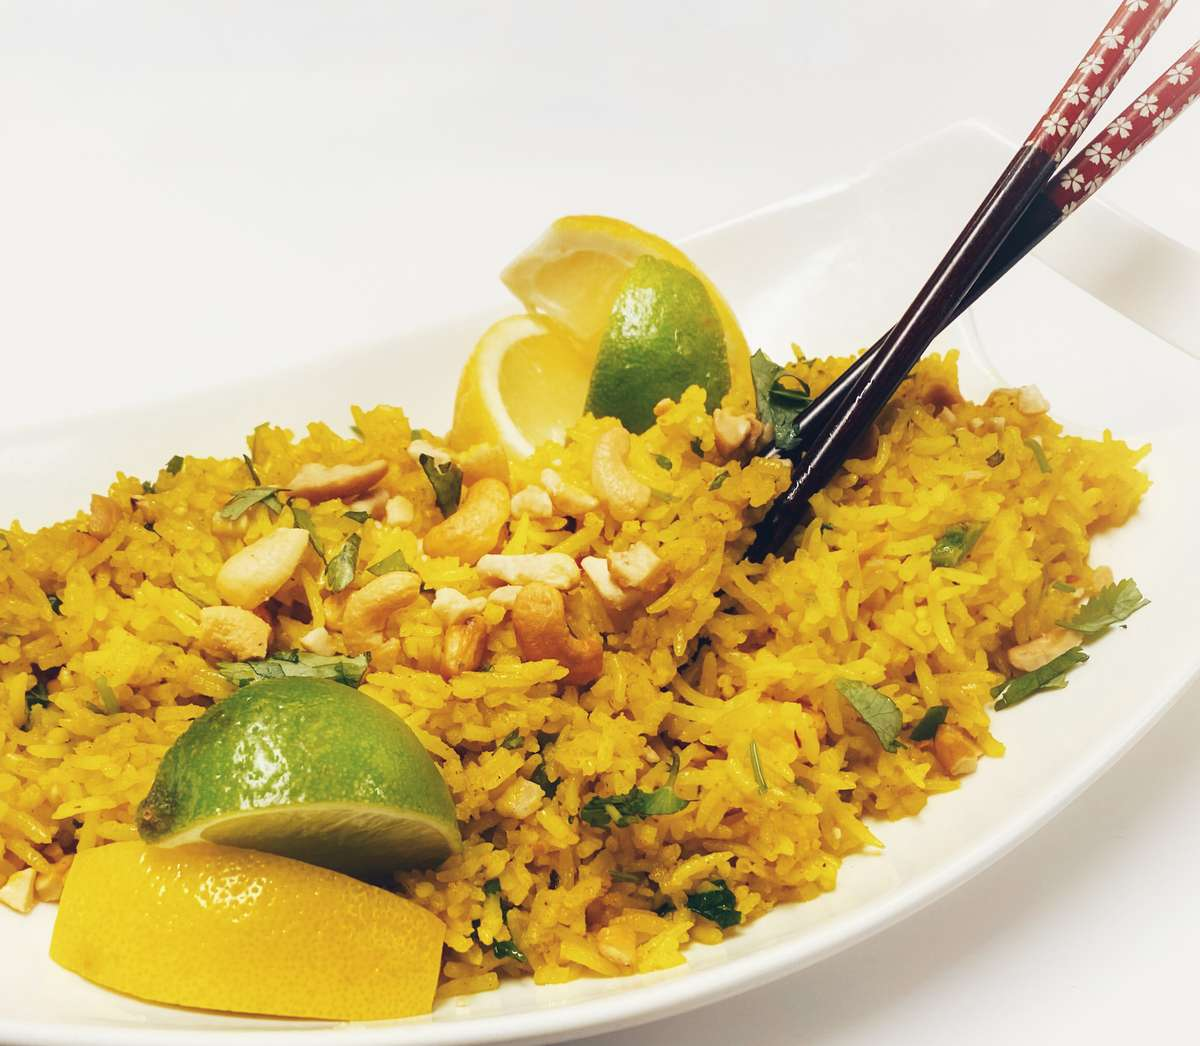 Lemon Turmeric Fried Rice